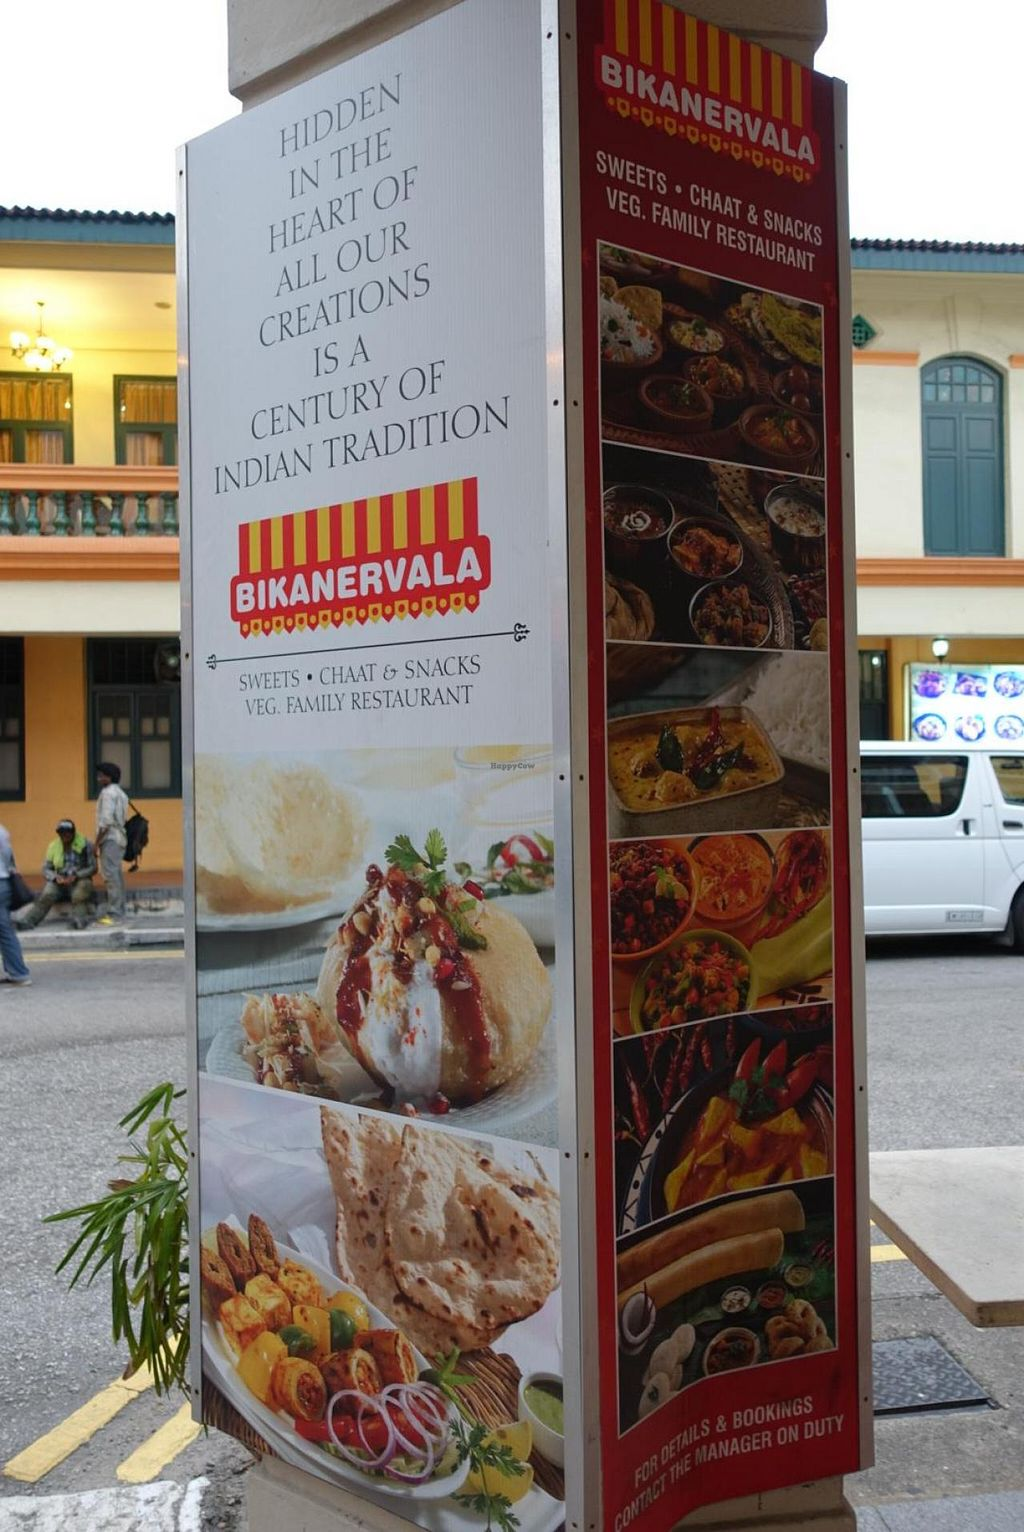 """Photo of CLOSED: Bikanervala  by <a href=""""/members/profile/JimmySeah"""">JimmySeah</a> <br/>yummy food pictures <br/> January 5, 2015  - <a href='/contact/abuse/image/43696/89581'>Report</a>"""